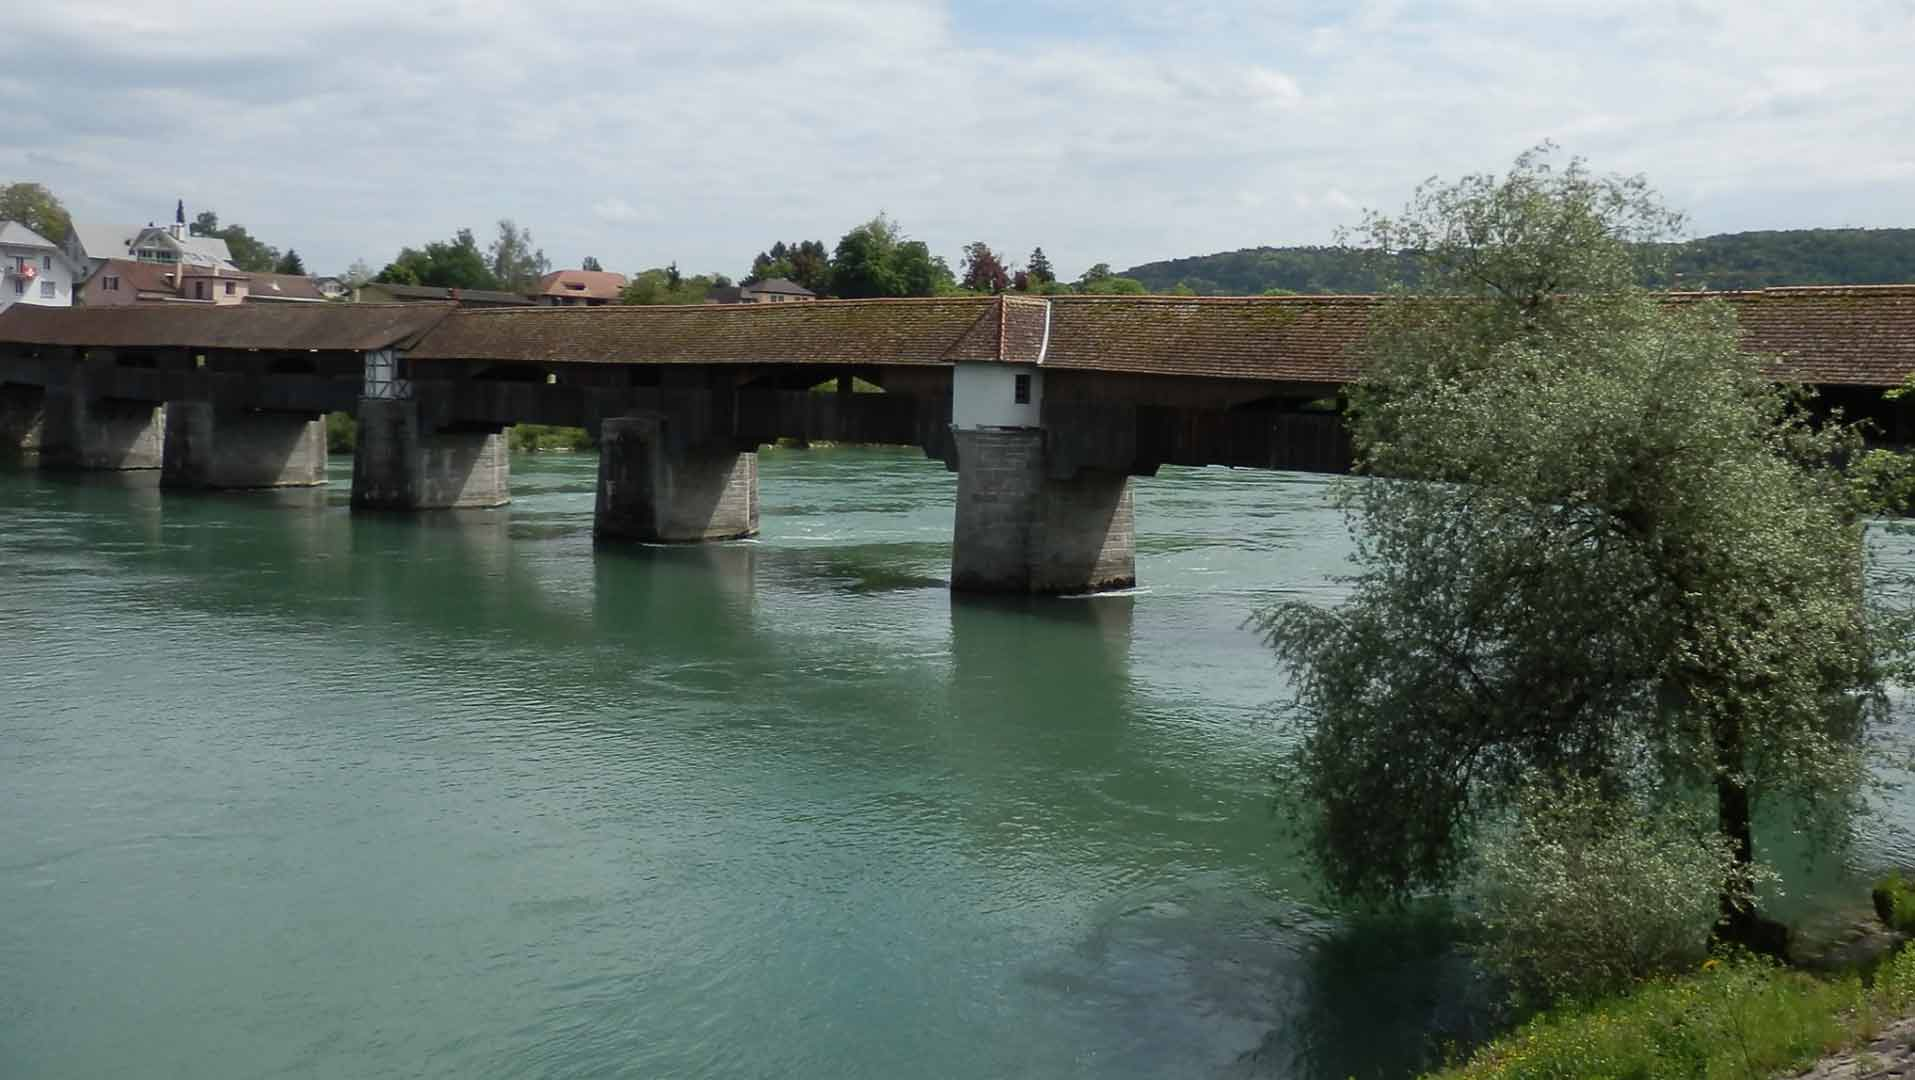 De houten brug over de Rijn in Bad Säckingen is de langste in Europa.